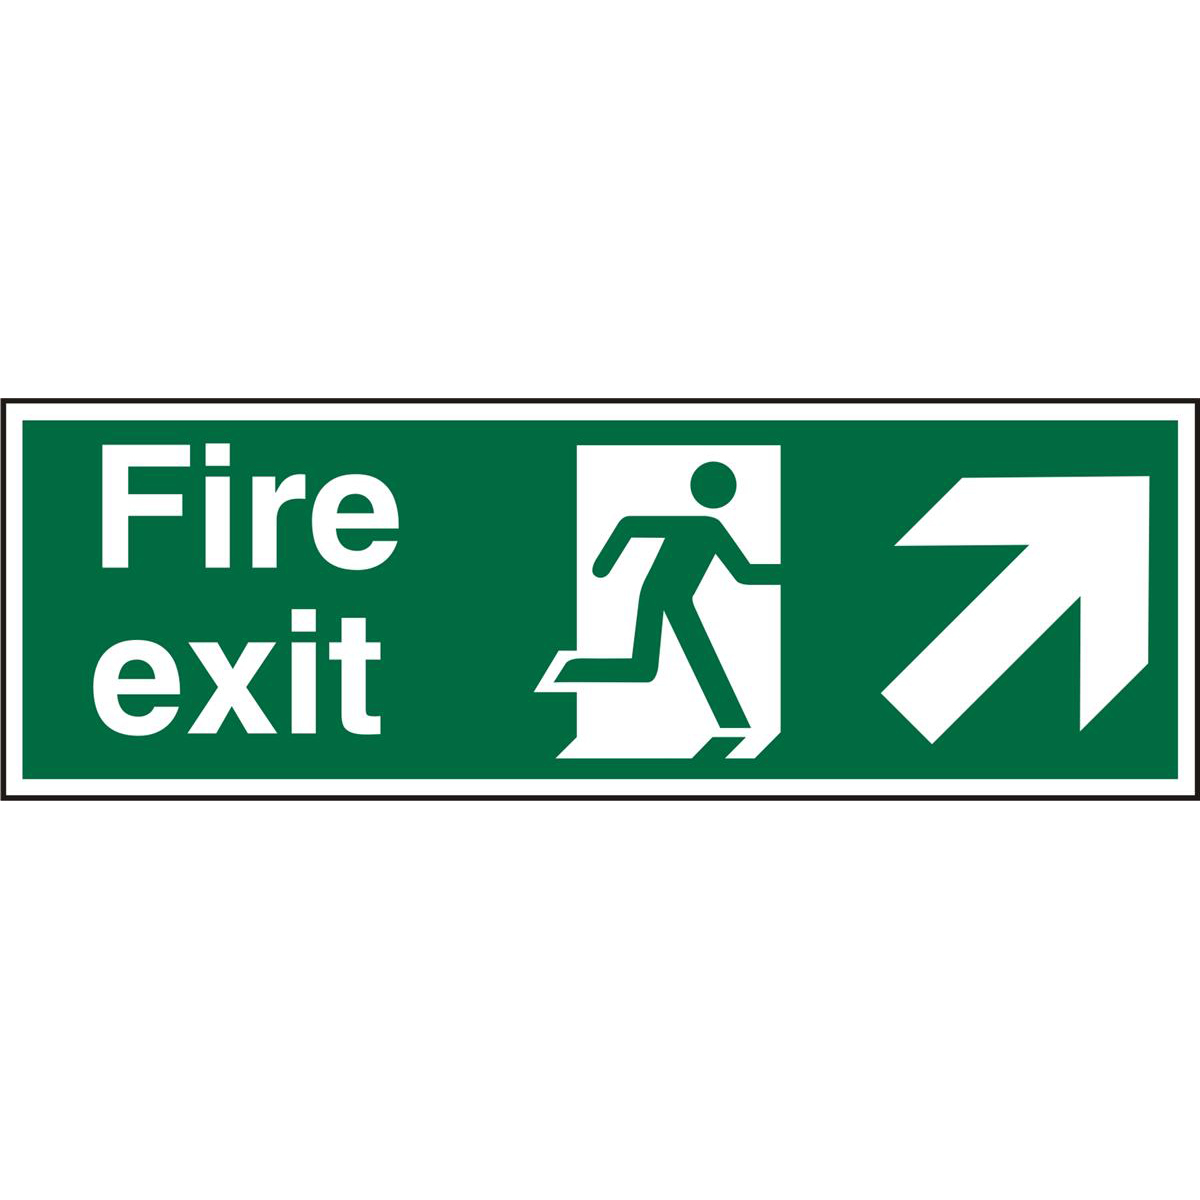 Prestige Sign 2mm DS 300x100 FireExit Man Running Right&Arrow Ref ACSP316300x100 *Up to 10 Day Leadtime*